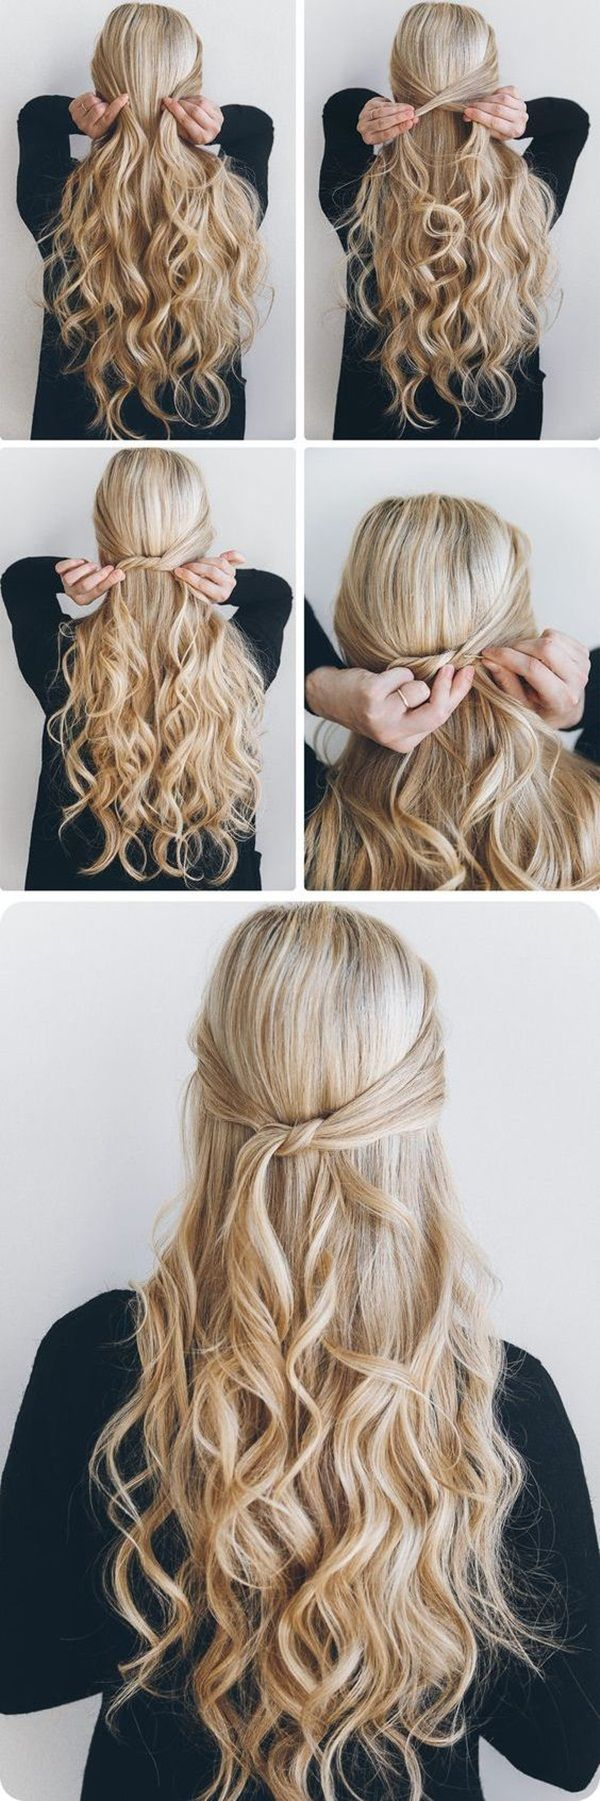 40 Easy Hairstyles For Schools To Try In 2016 Down Hairstyles For Long Hair Medium Hair Styles Medium Length Hair Styles